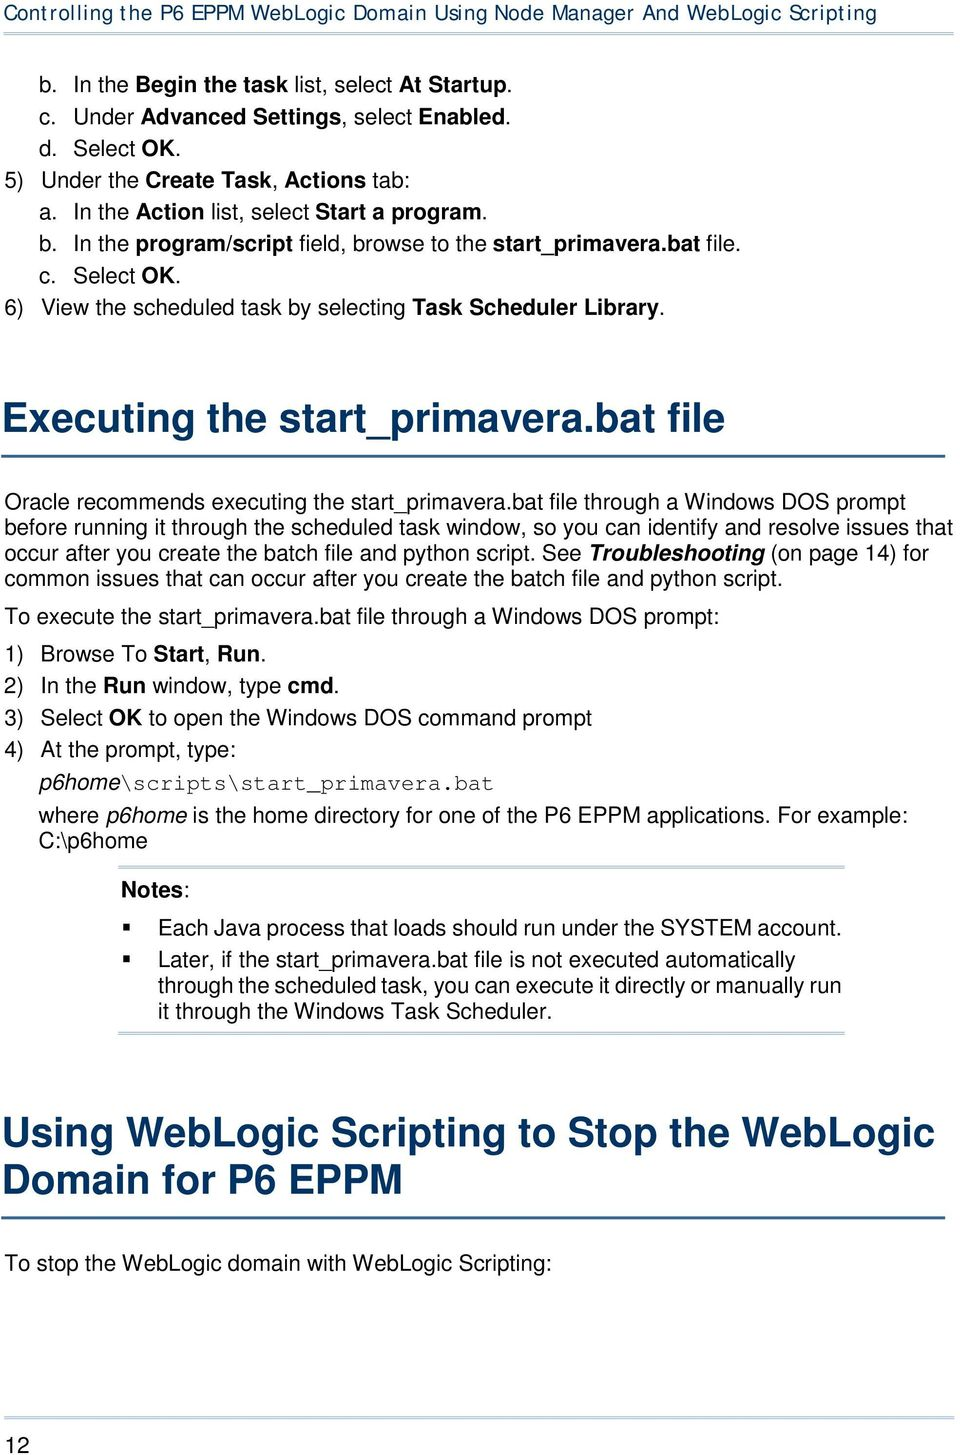 About Node Manager and the WebLogic Scripting Tool - PDF